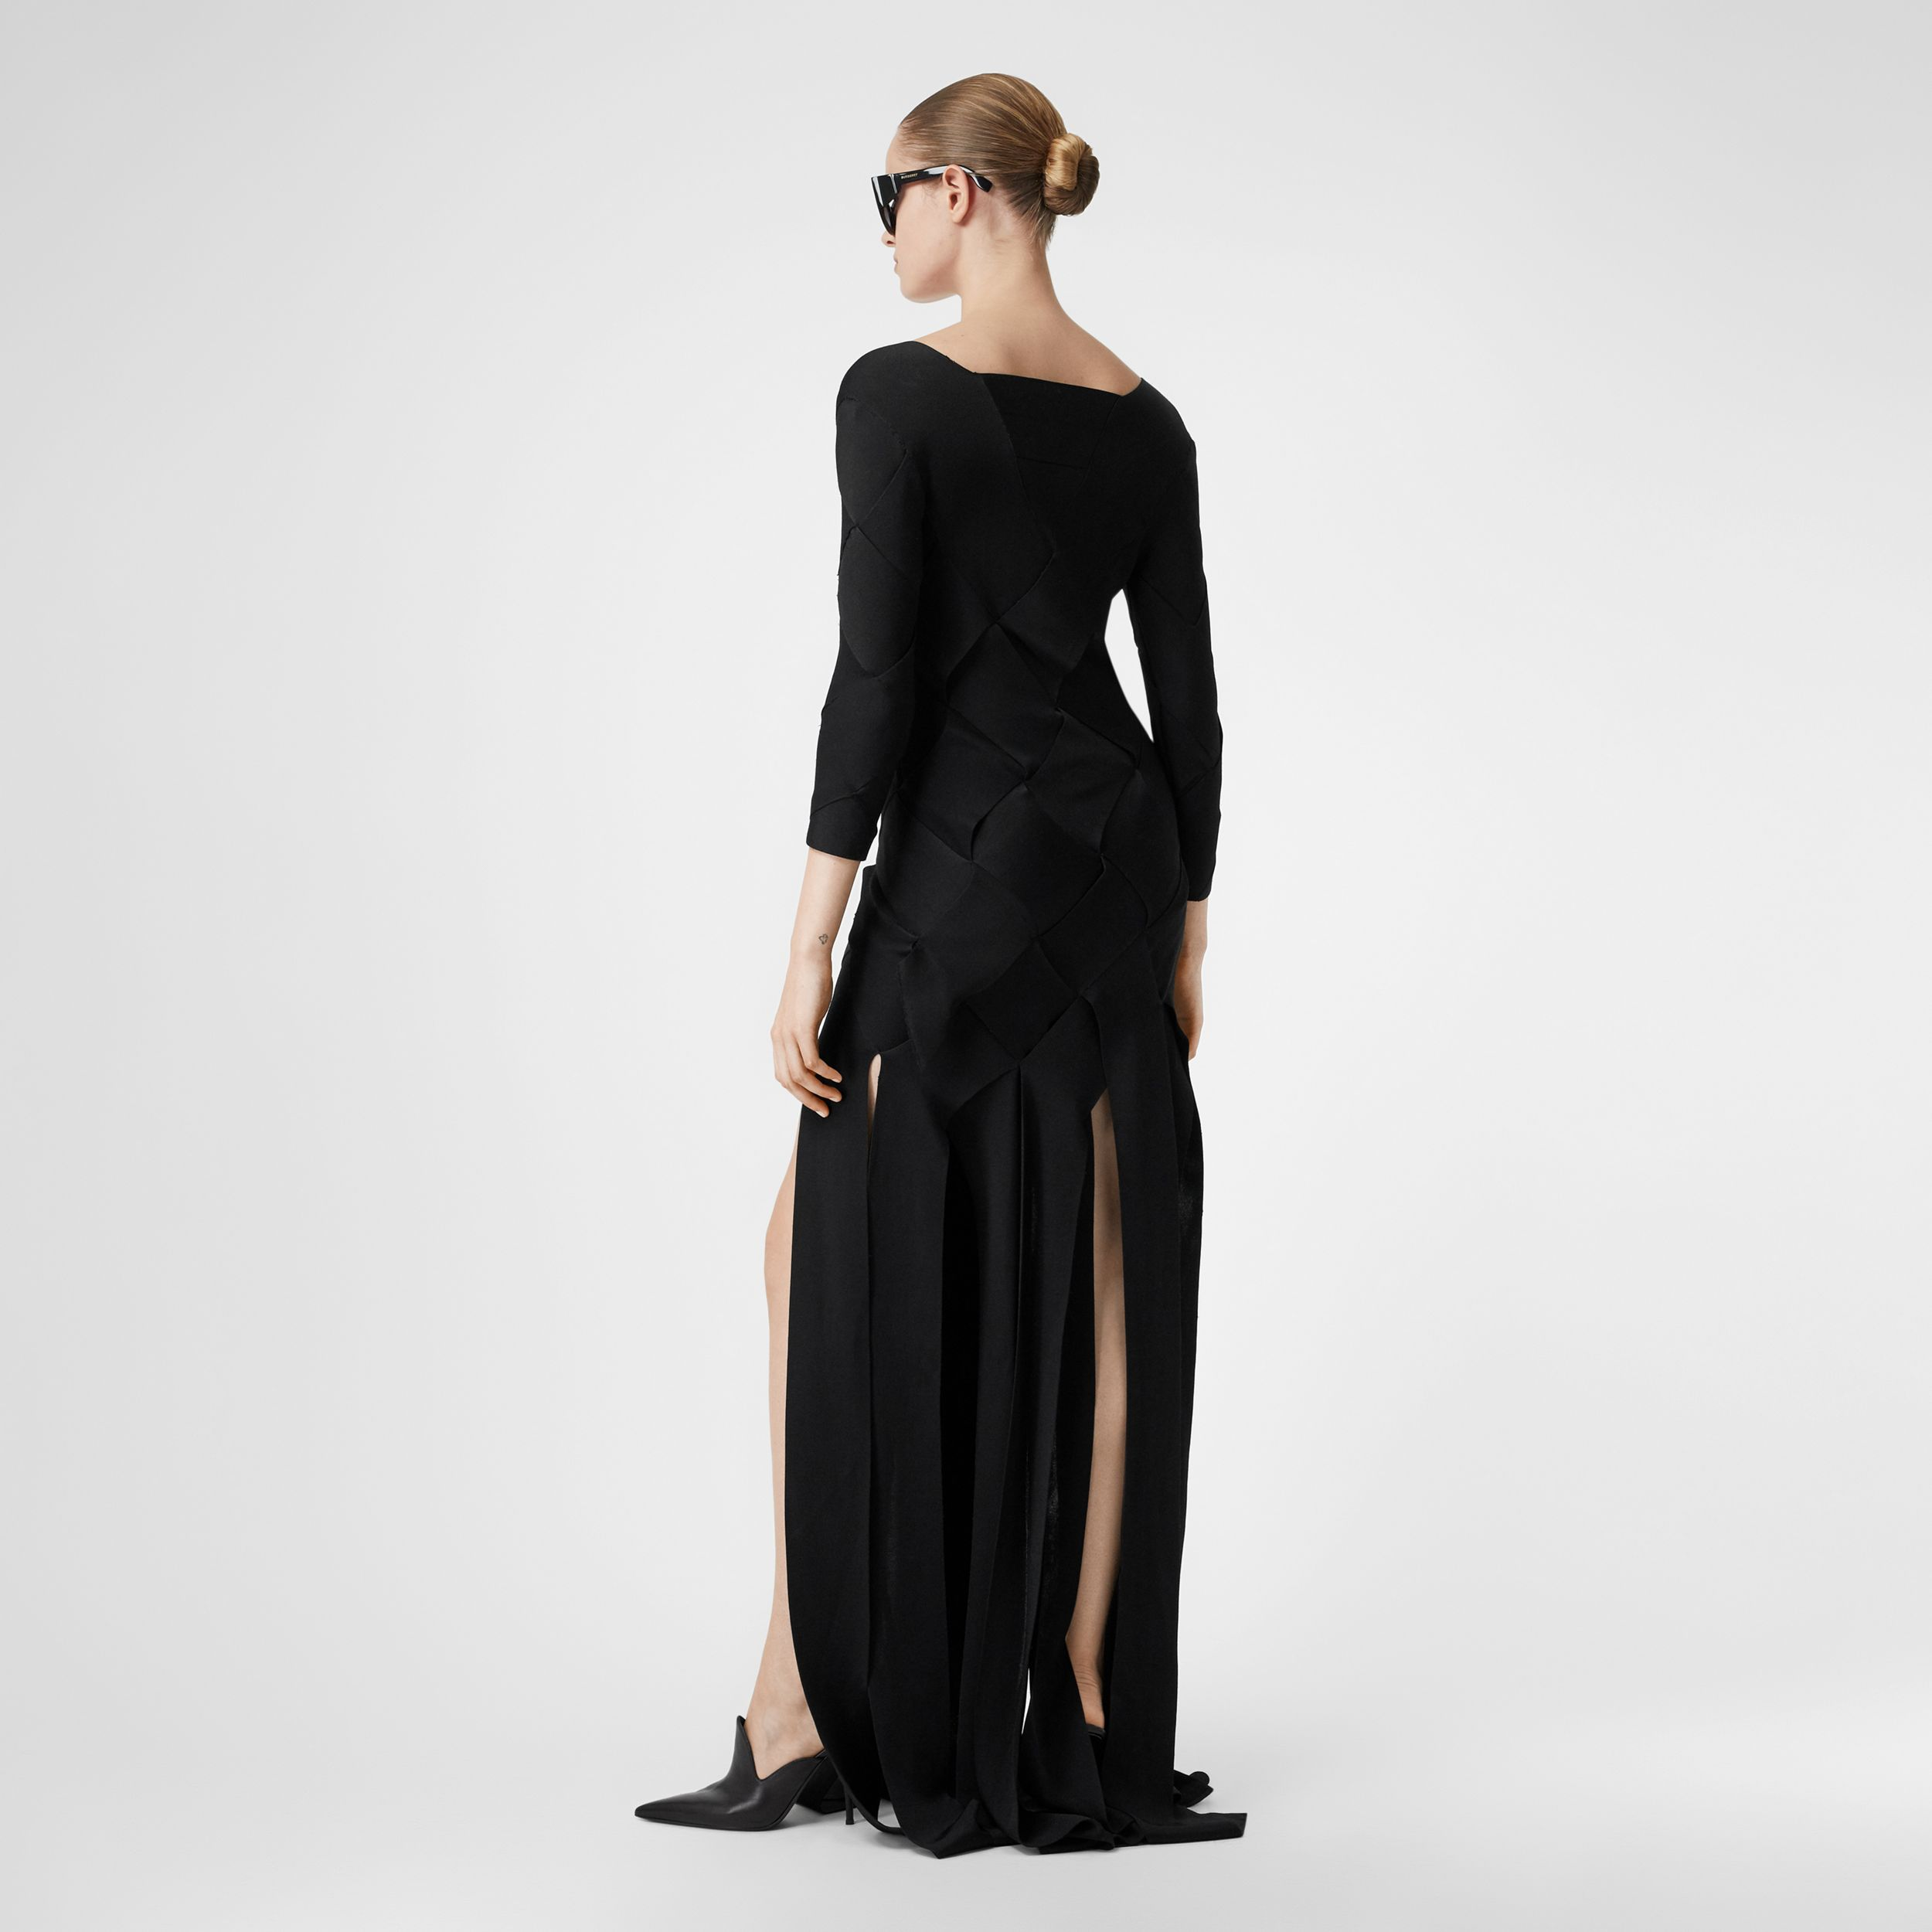 Long-sleeve Panelled Knit Gown in Black - Women | Burberry Canada - 3